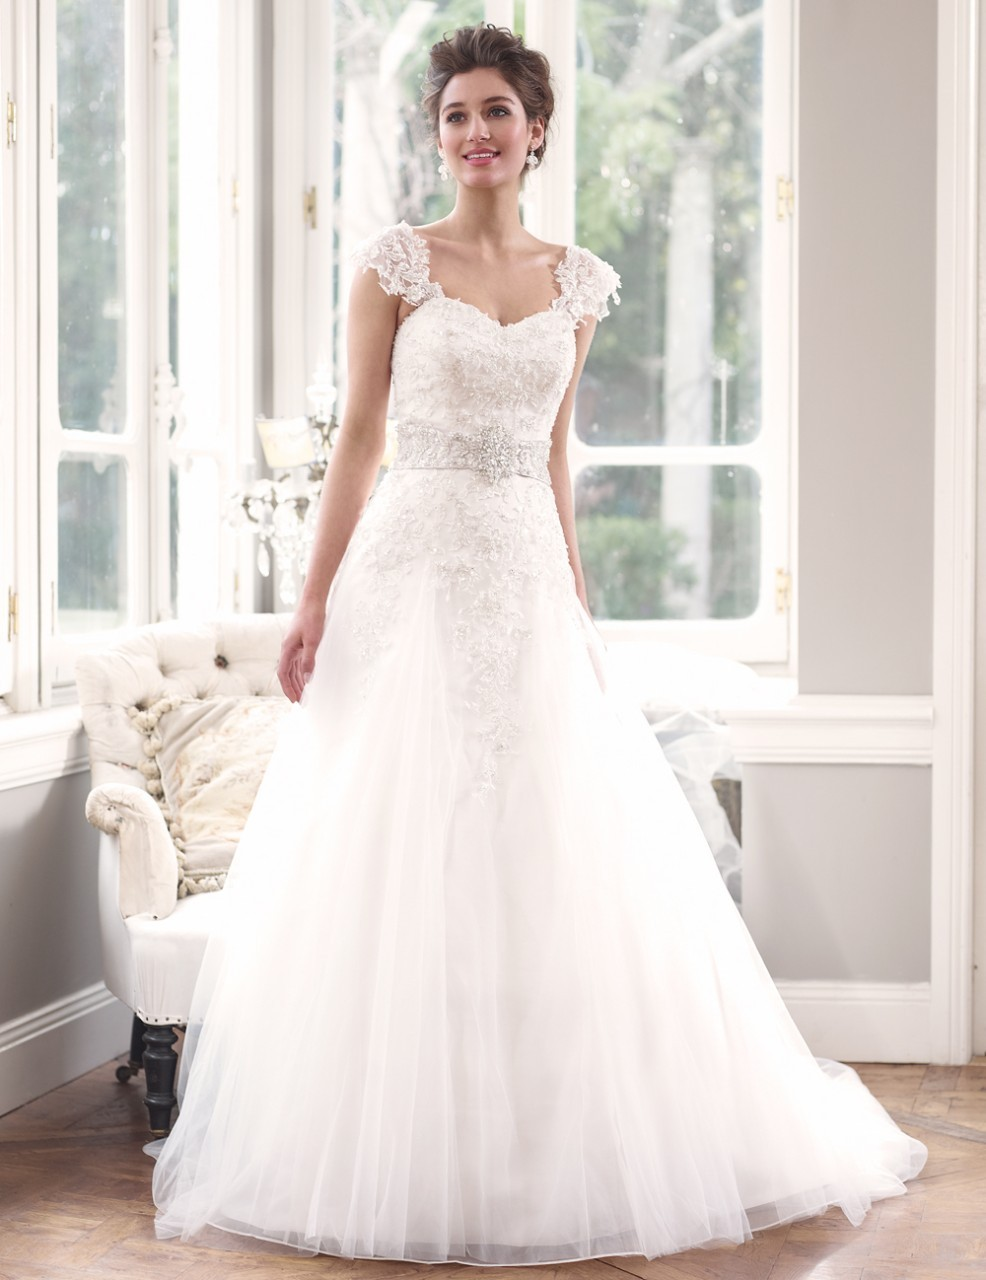 Lace Wedding Dress Pinterest, Pinterest Bridal Gowns, Beach Wedding Gowns, Casual Beach Wedding Dresses, Beach Wedding Dresses 2015, Best Pinterest Boards to Follow, Pinterest Wedding Party Dresses, Pinterest Dress Ideas for Women